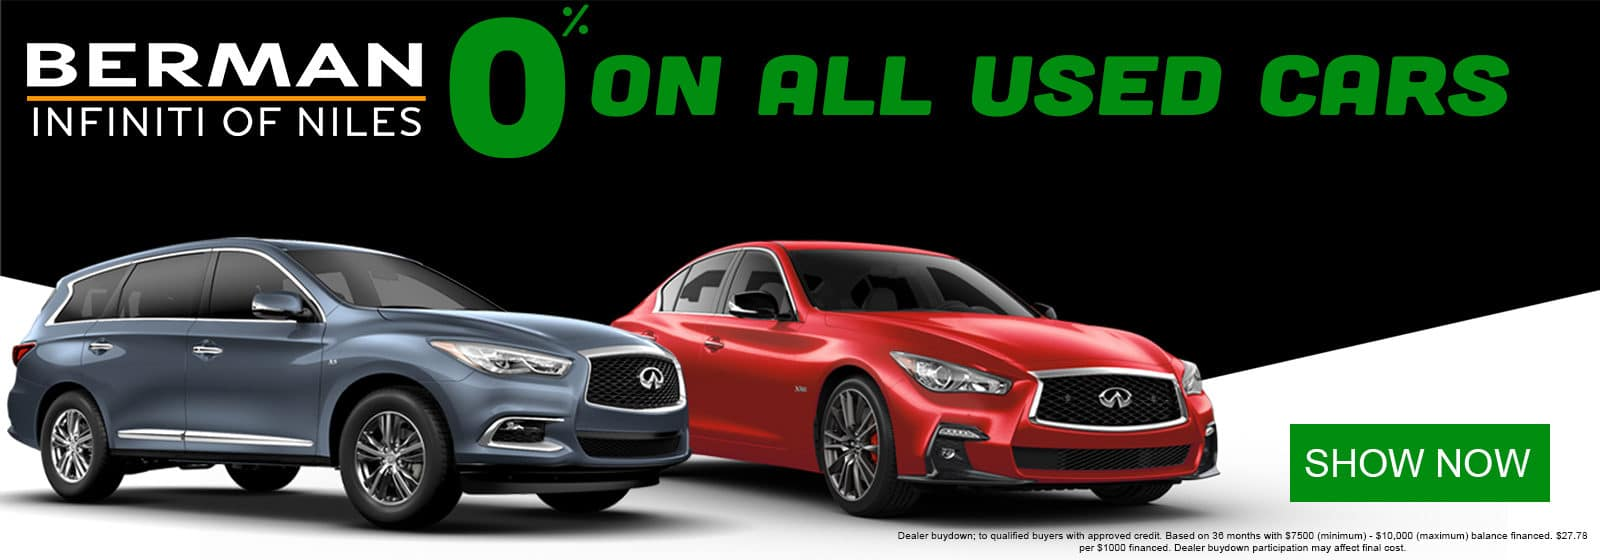 Get 0% APR Financing on ALL USED CARS during the Chicago Auto Show!